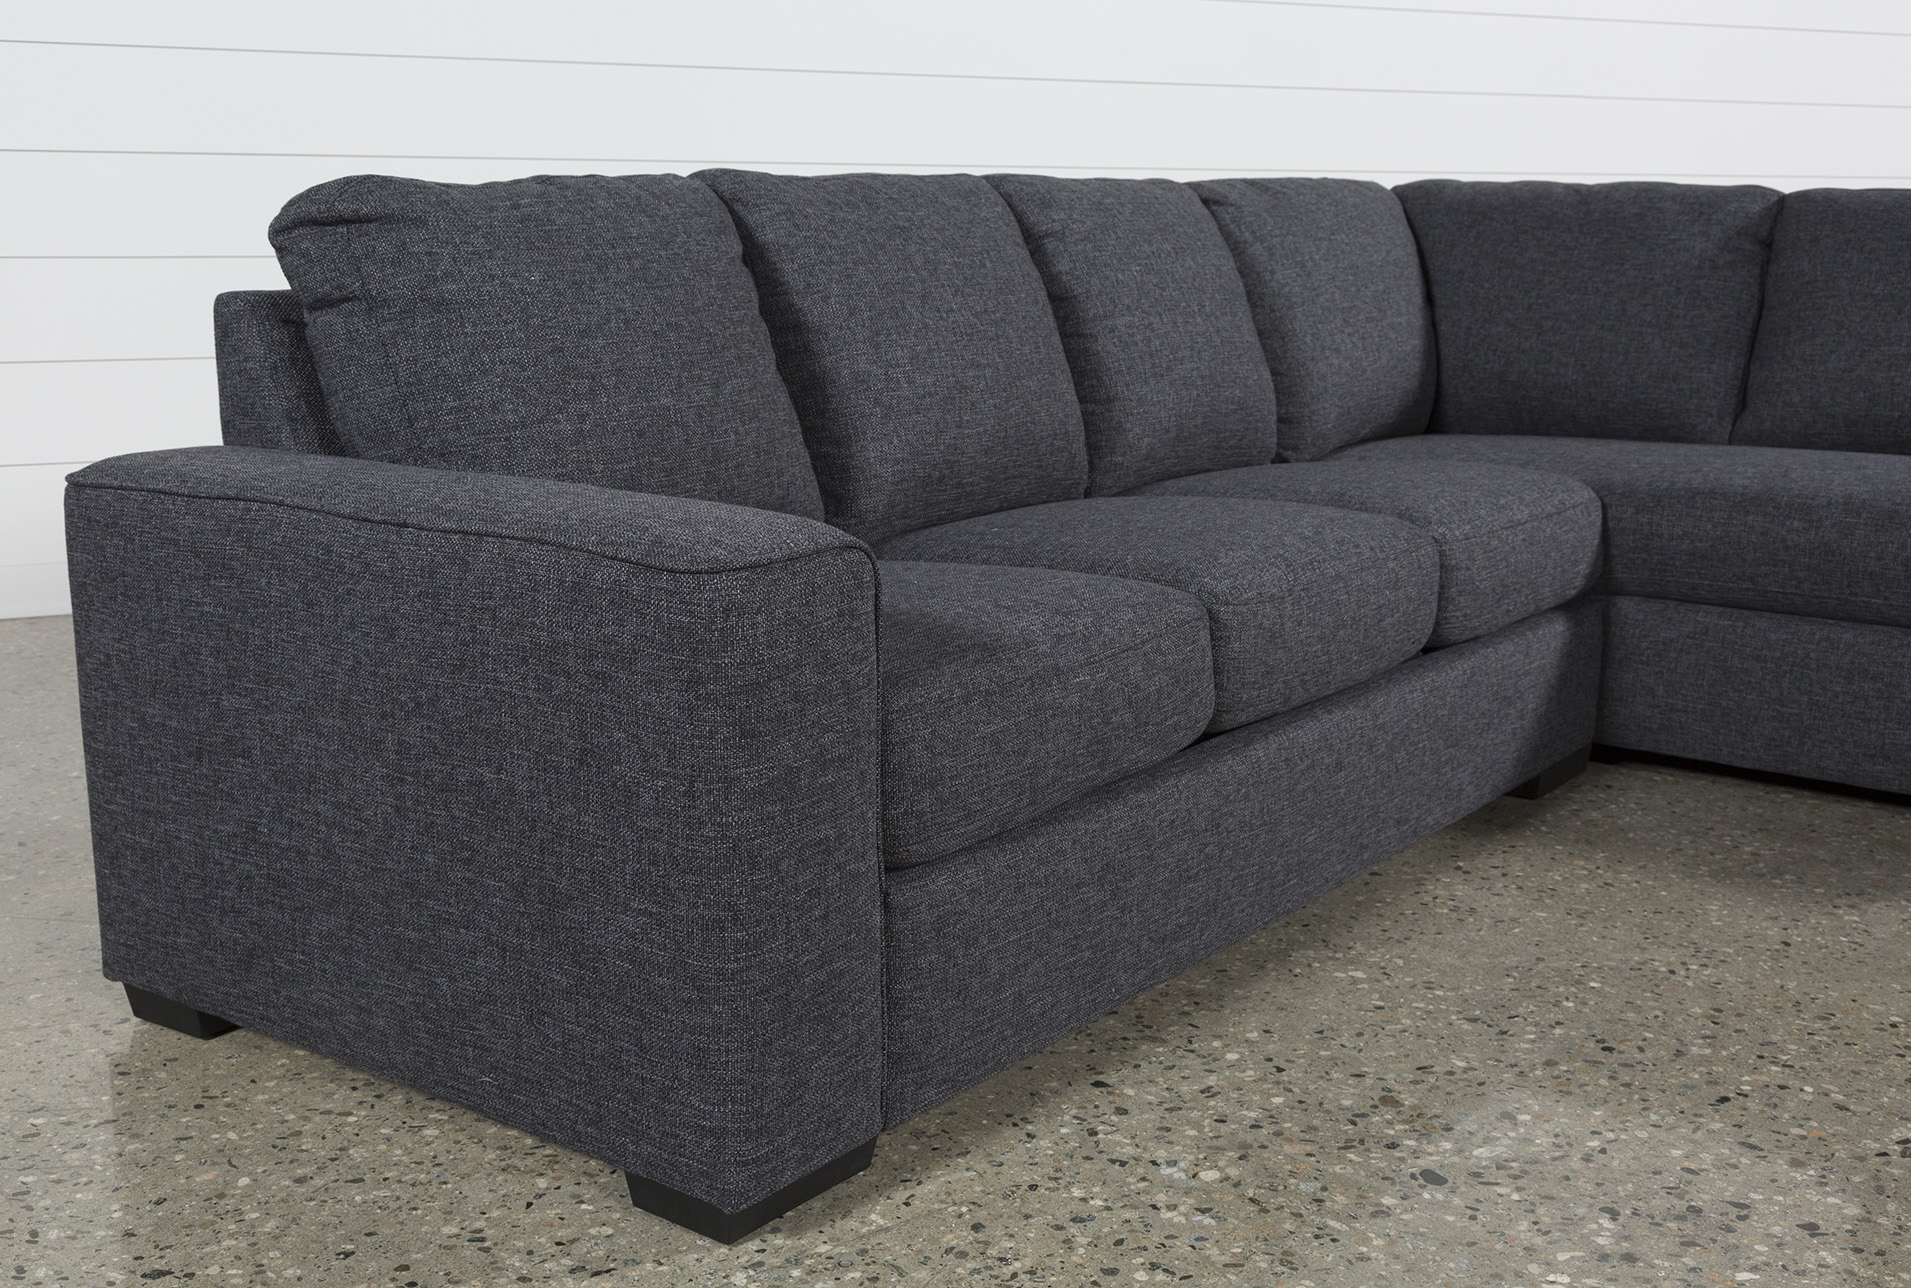 Lucy Dark Grey 2 Piece Sectional W/raf Chaise | Pinterest | Dark within Lucy Grey 2 Piece Sectionals With Raf Chaise (Image 17 of 30)